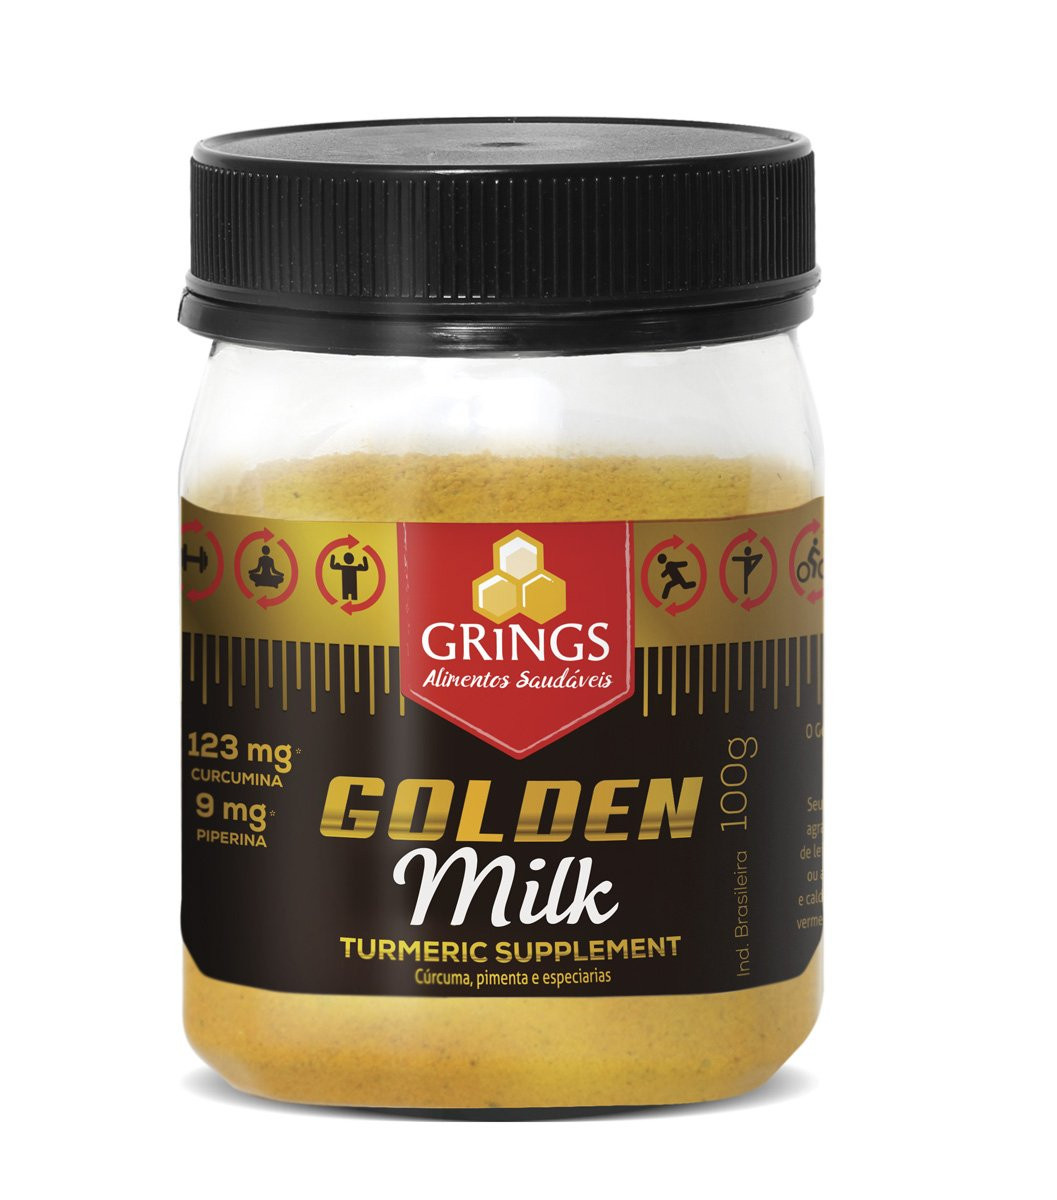 Golden Milk 100g - Grings